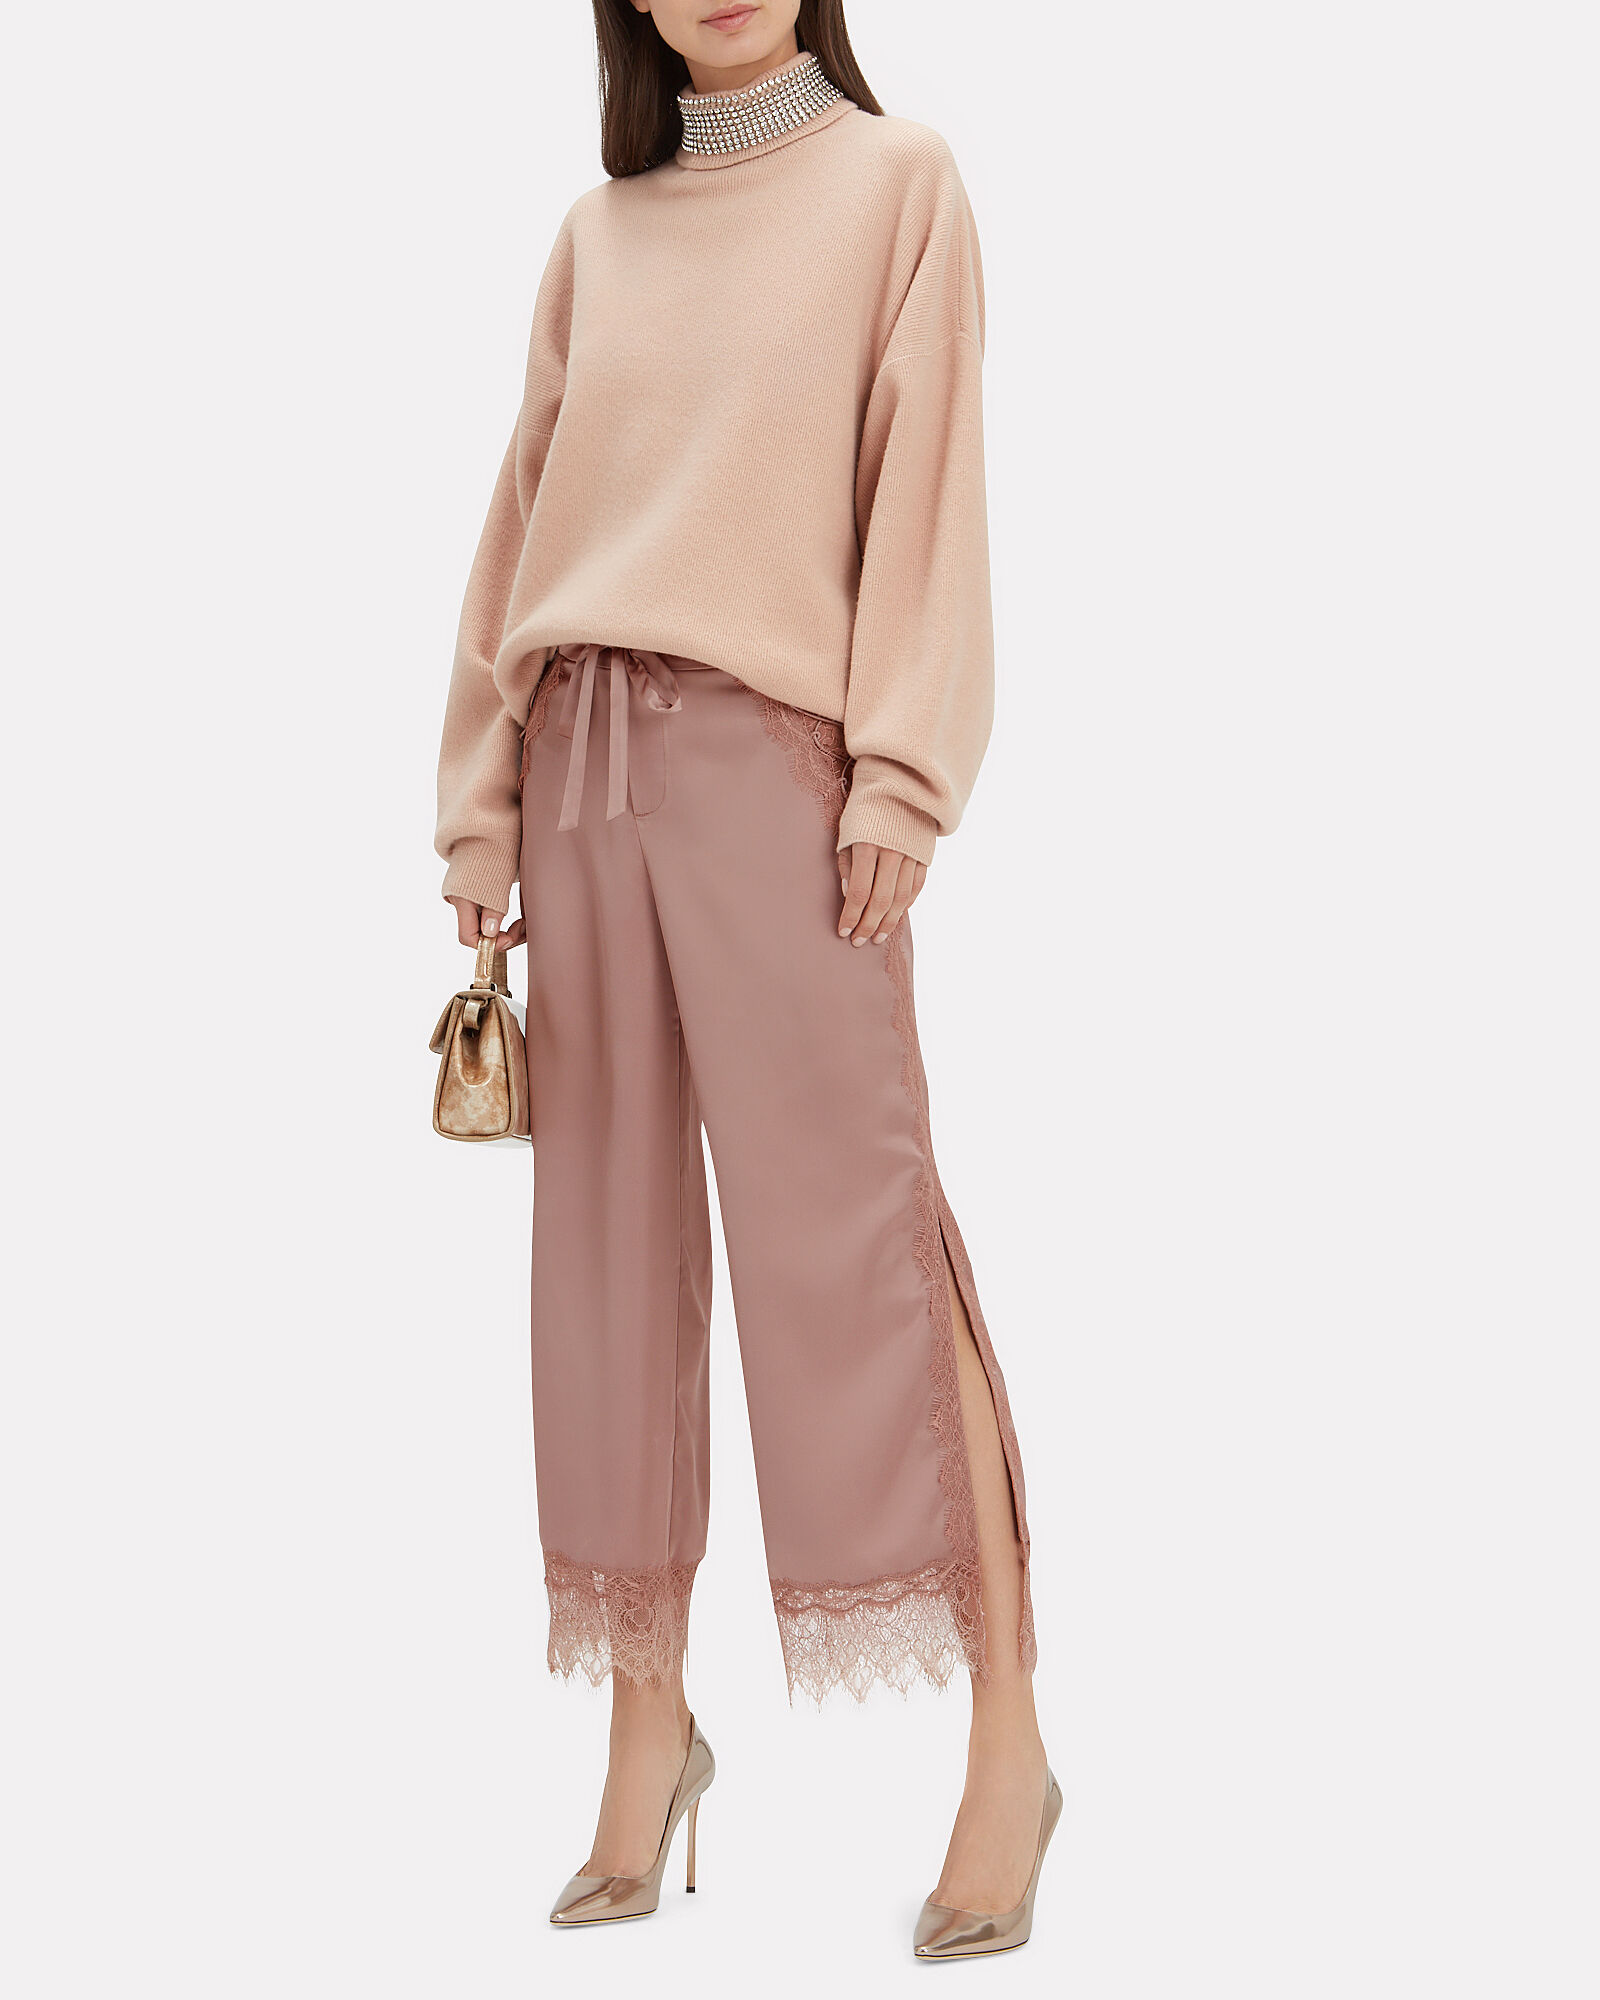 Lace Trim Pants, BLUSH, hi-res